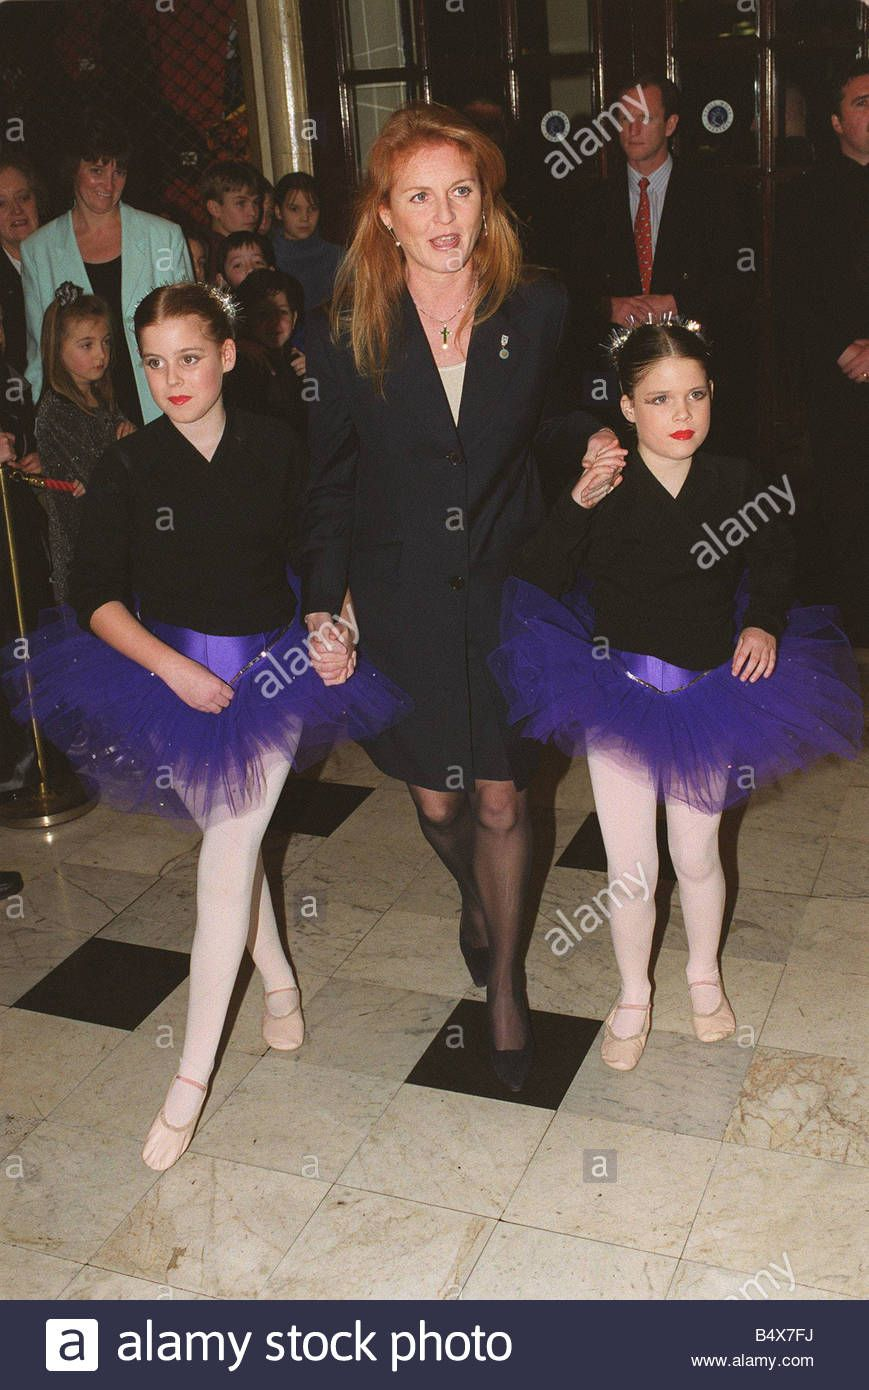 Download this stock image Duchess of York with Princess